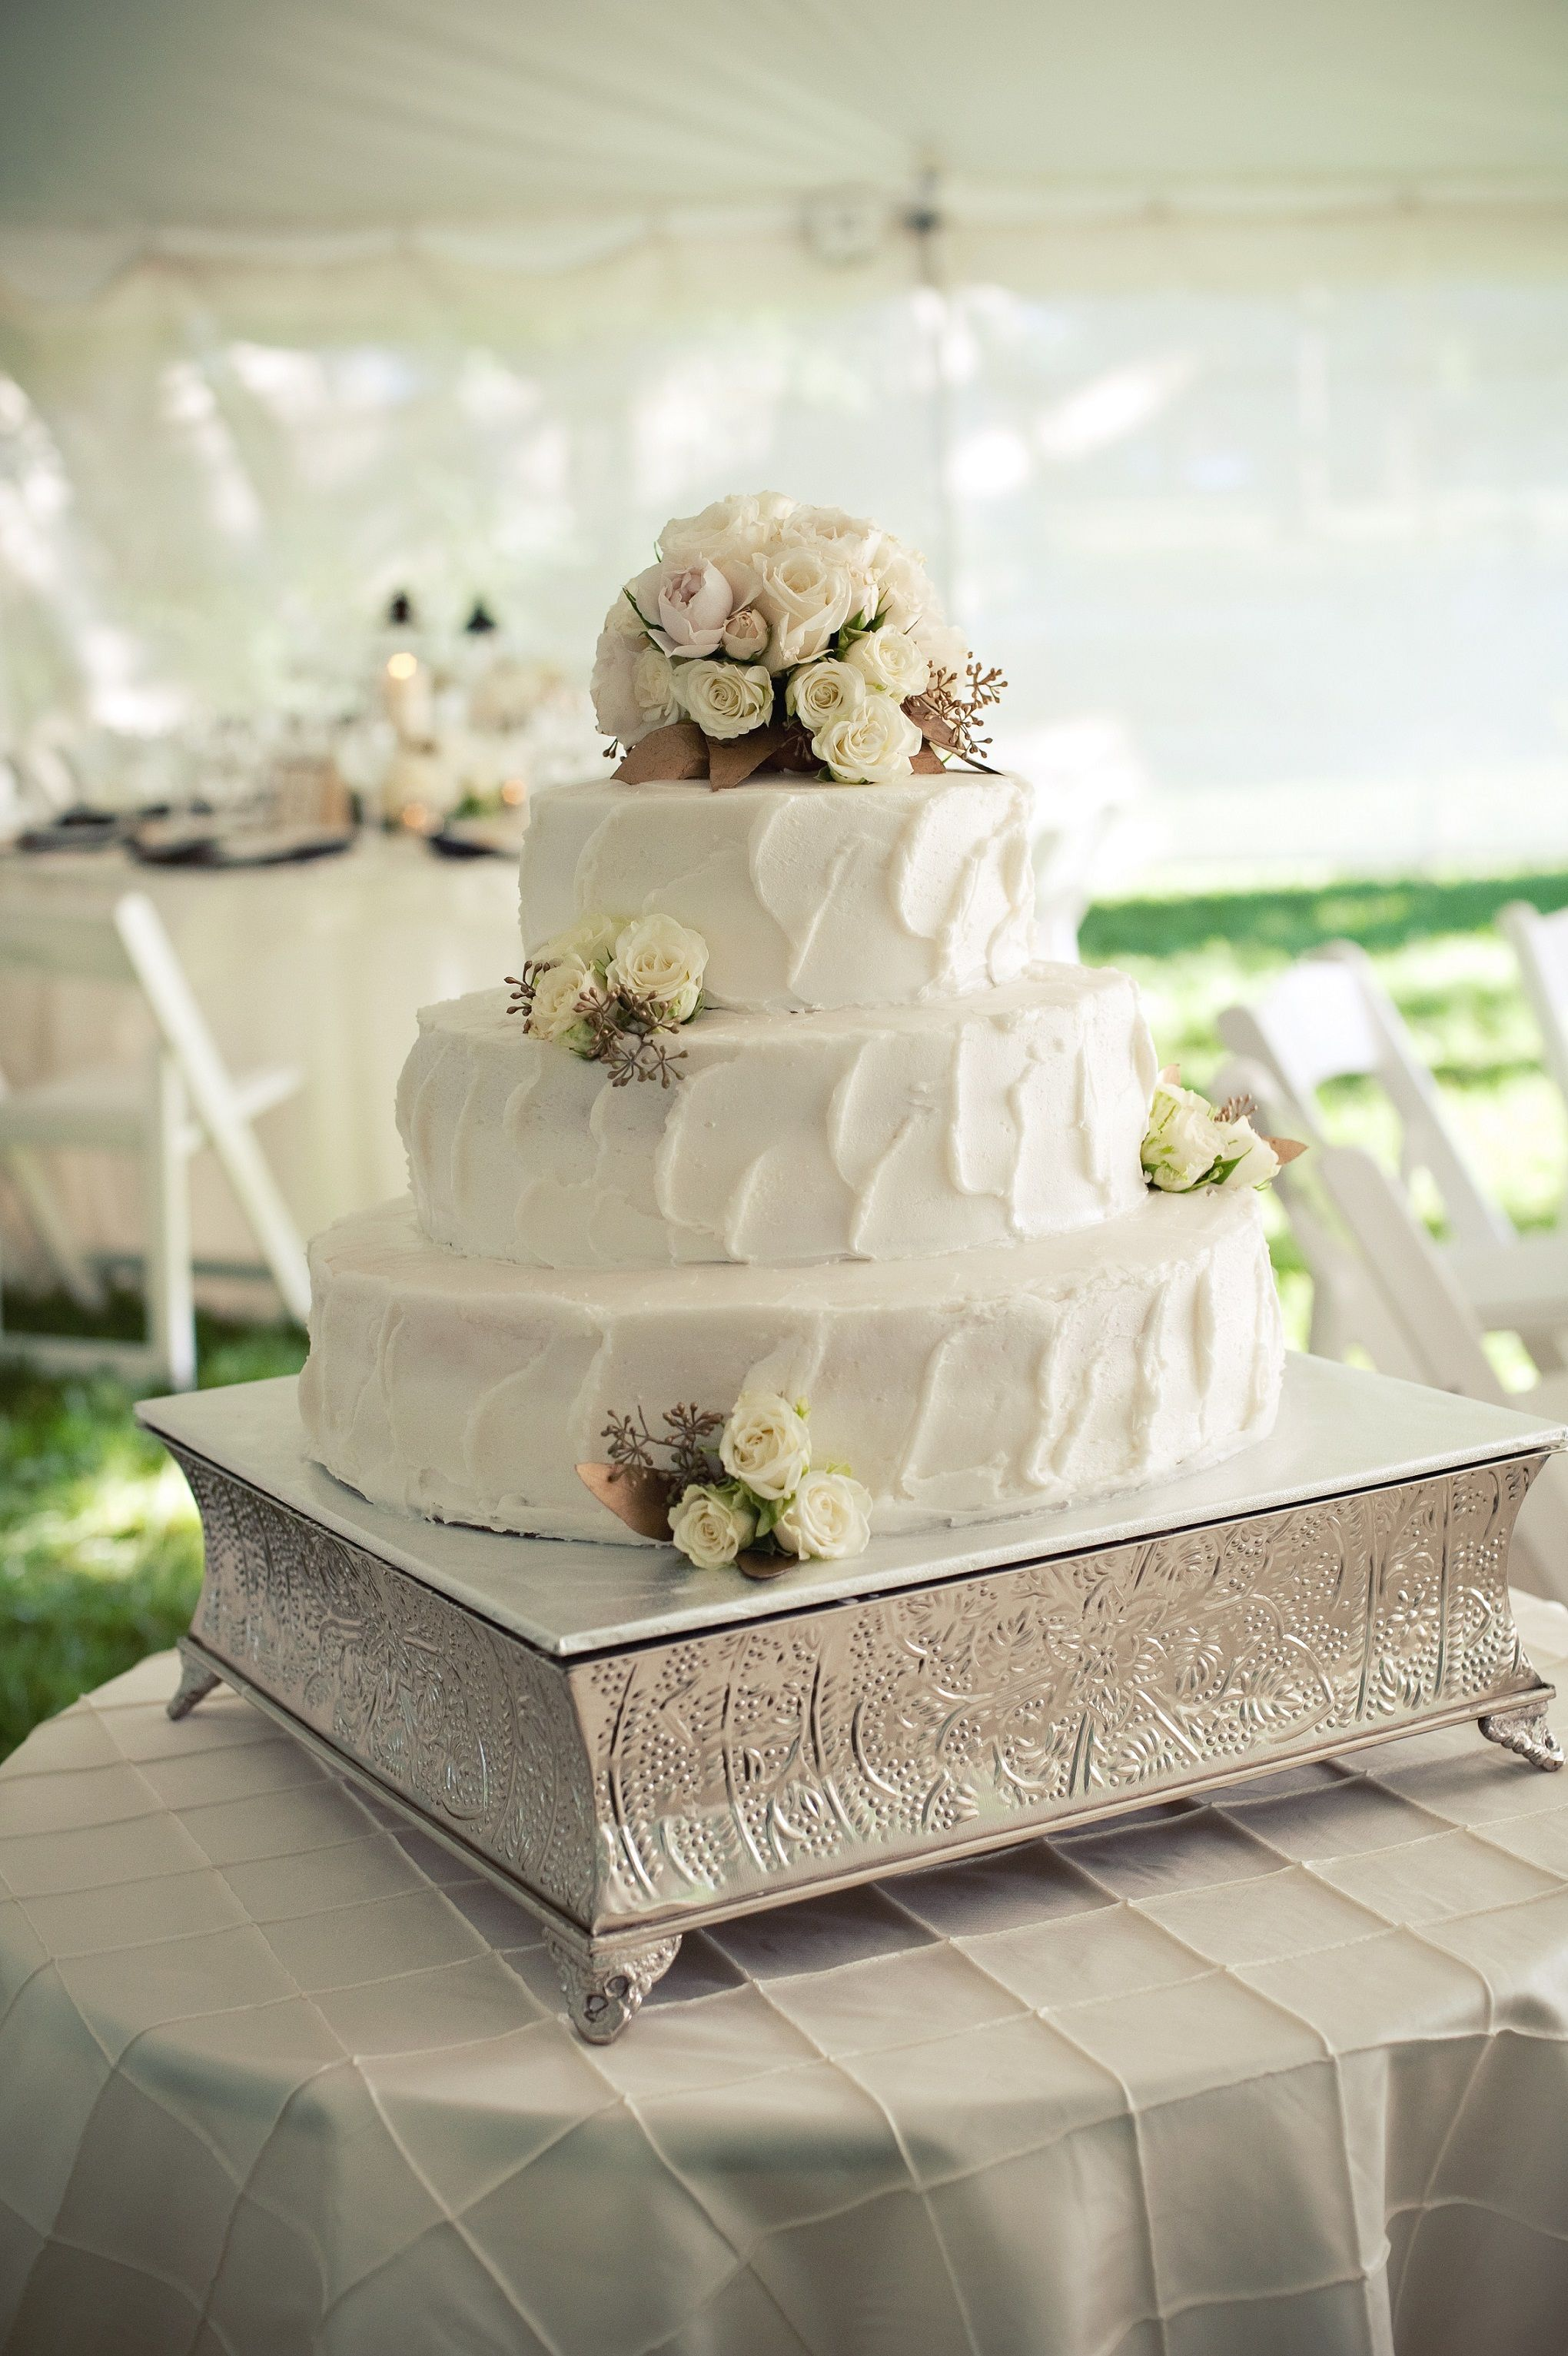 Ivory Wedding Cake Ercream Frosting Fl Topper Tent Silver